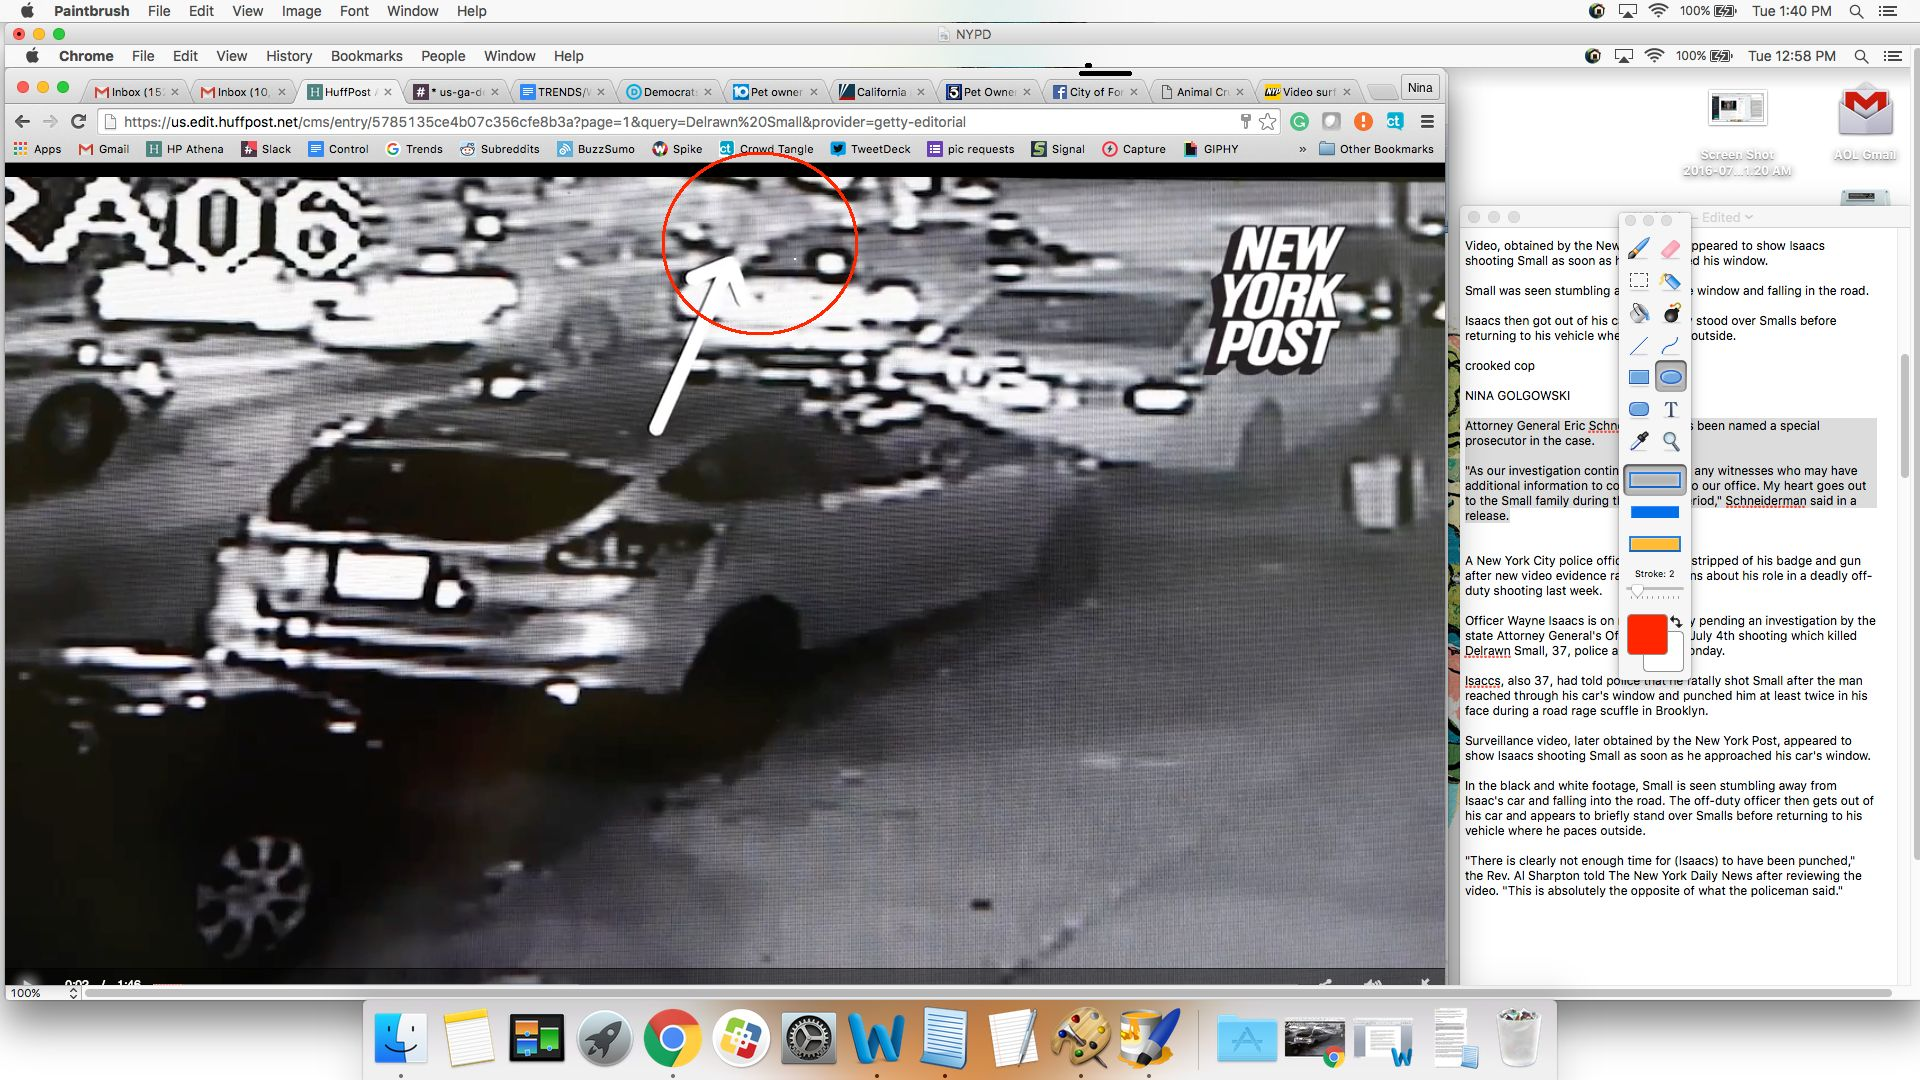 Surveillance video shows Delrawn Small approaching off-duty NYPD Officer Wayne Isaacs outside his car on July 4